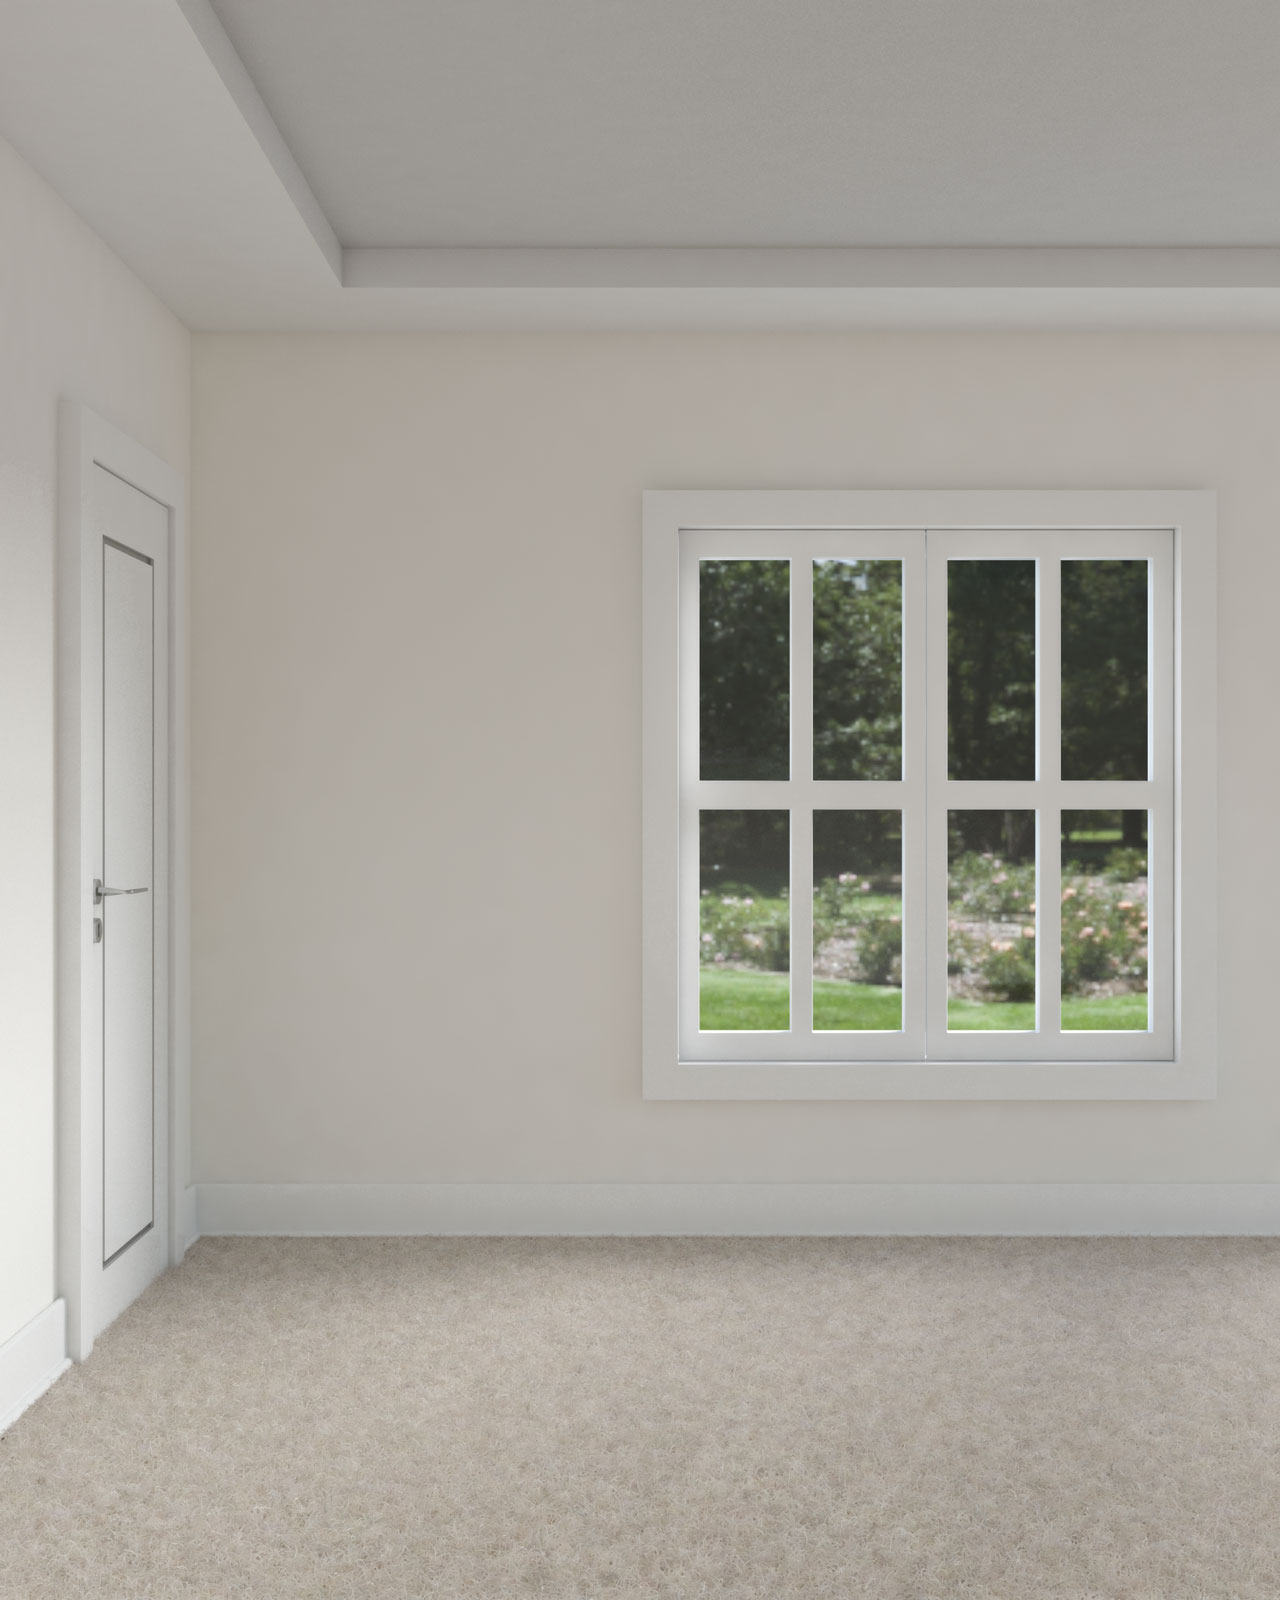 White dove walls with gray ceiling